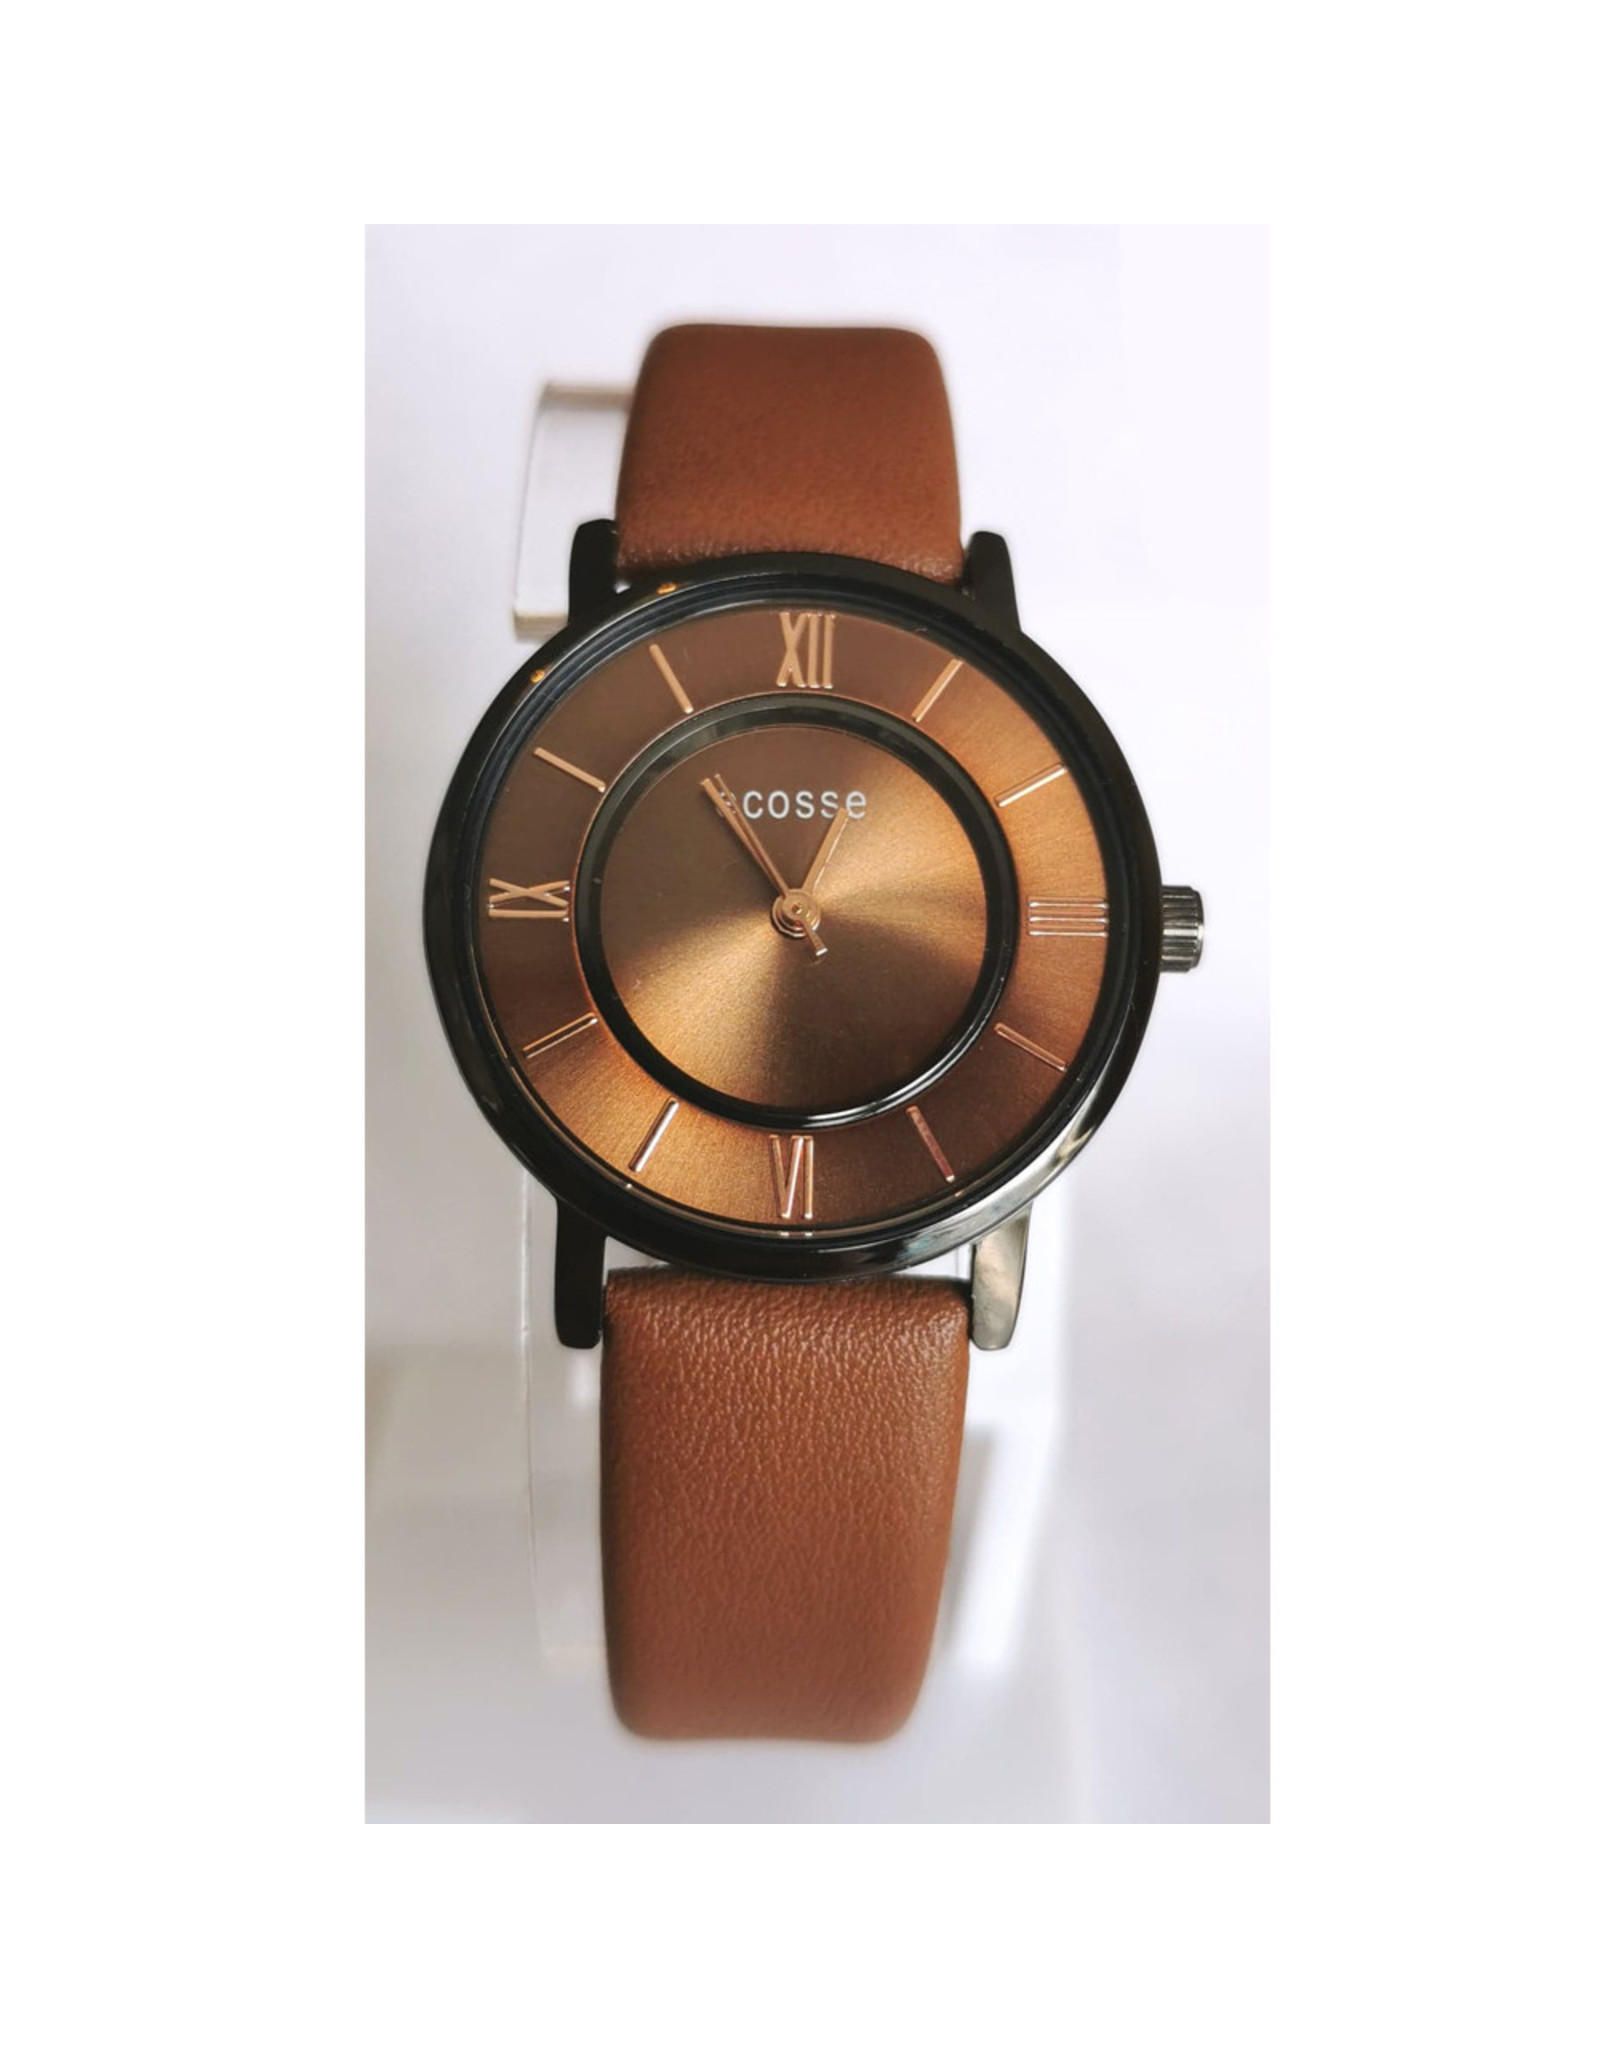 Écosse 2031 Brown